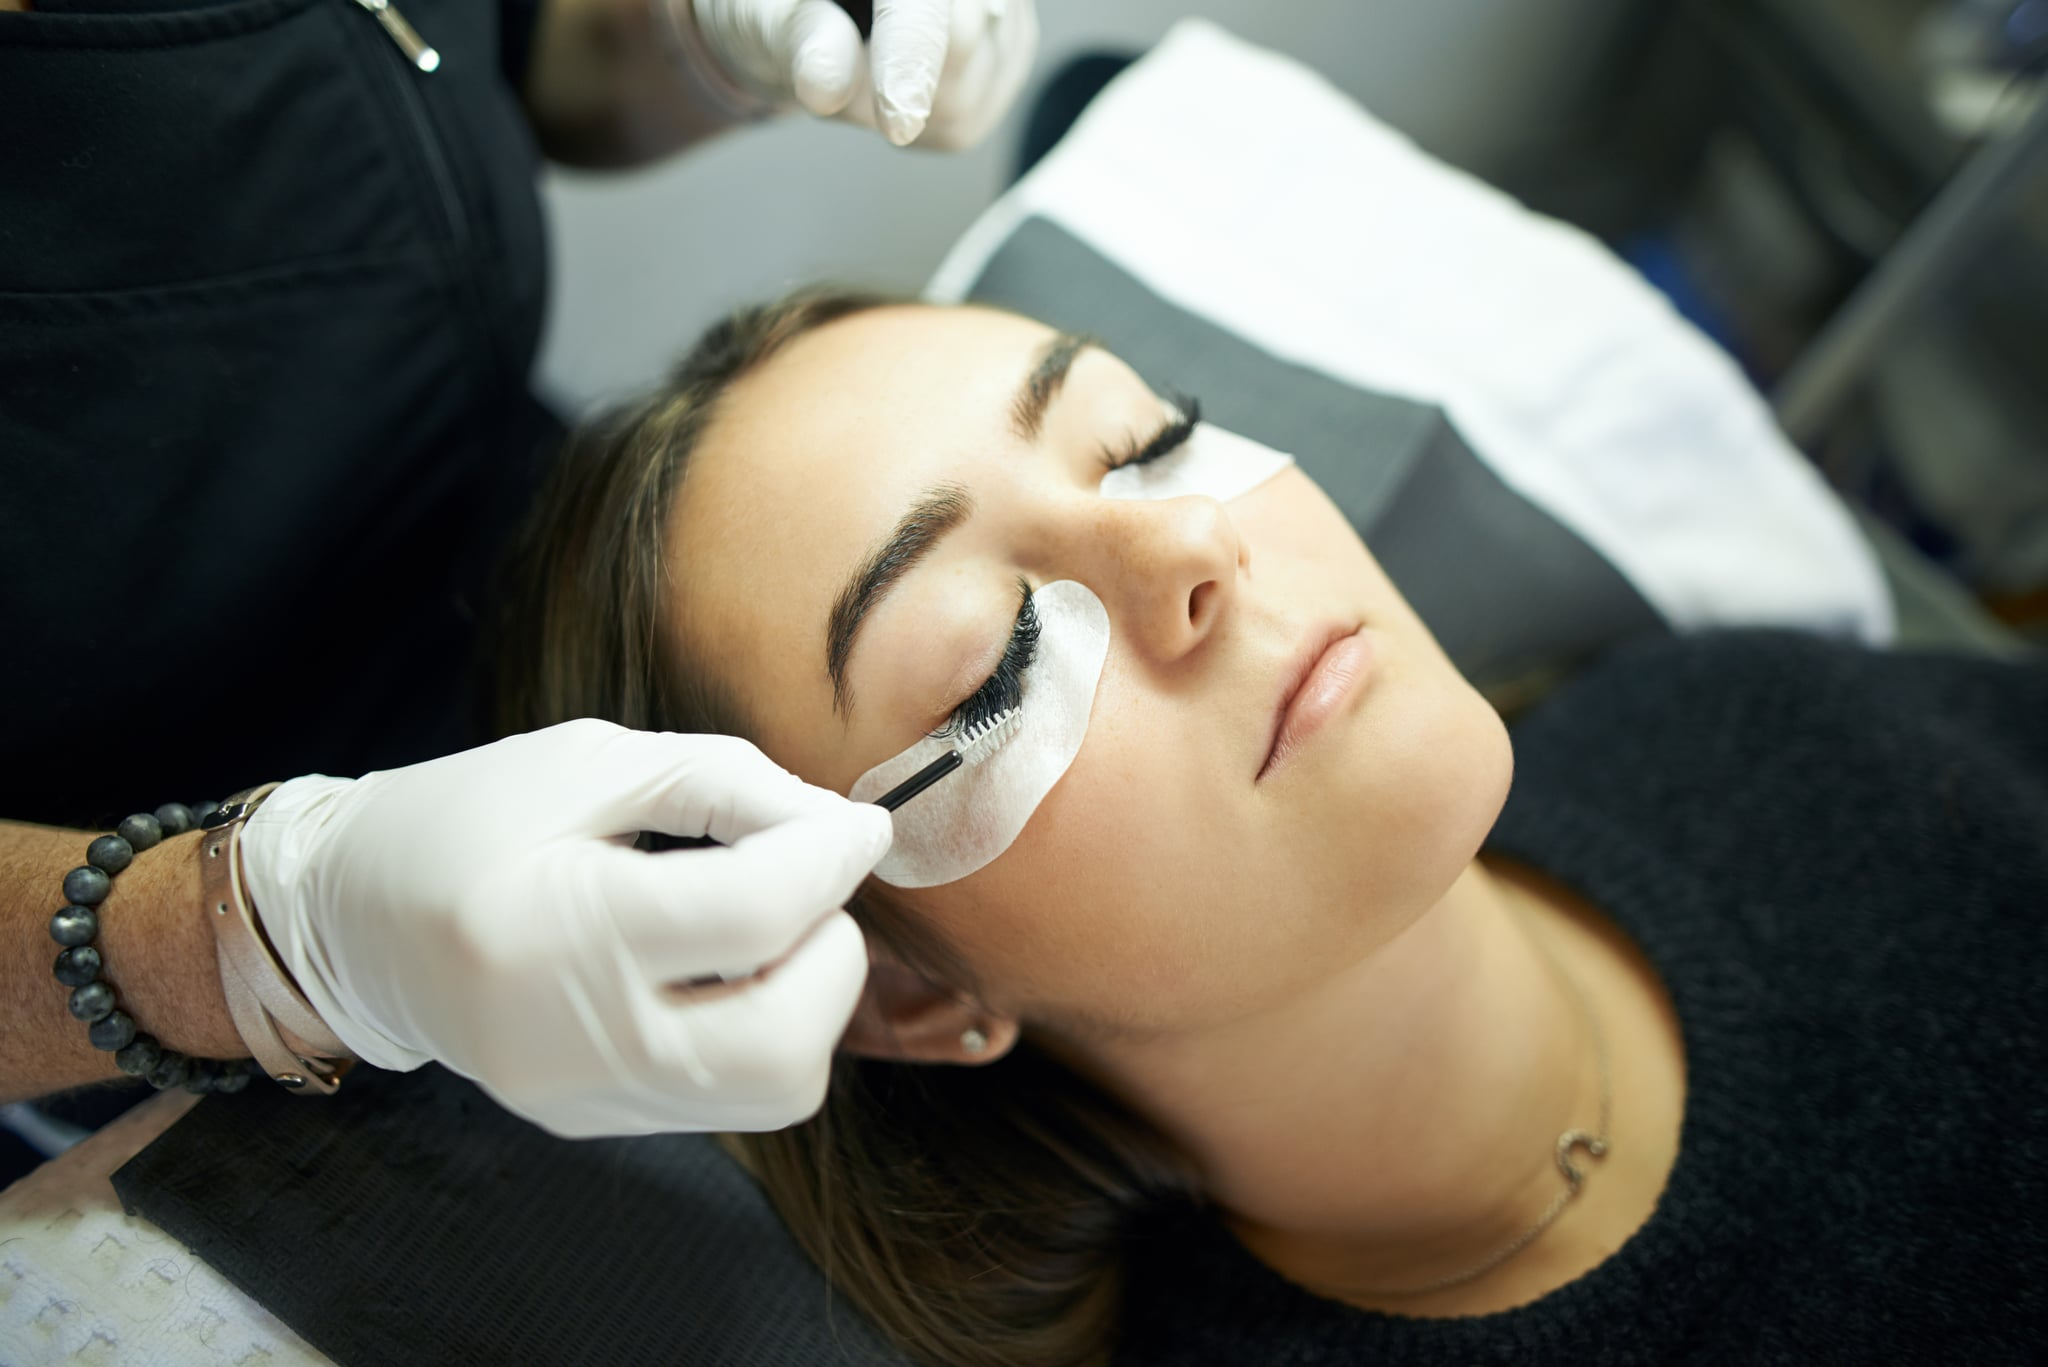 Cropped shot of a young woman getting eyelash extensions